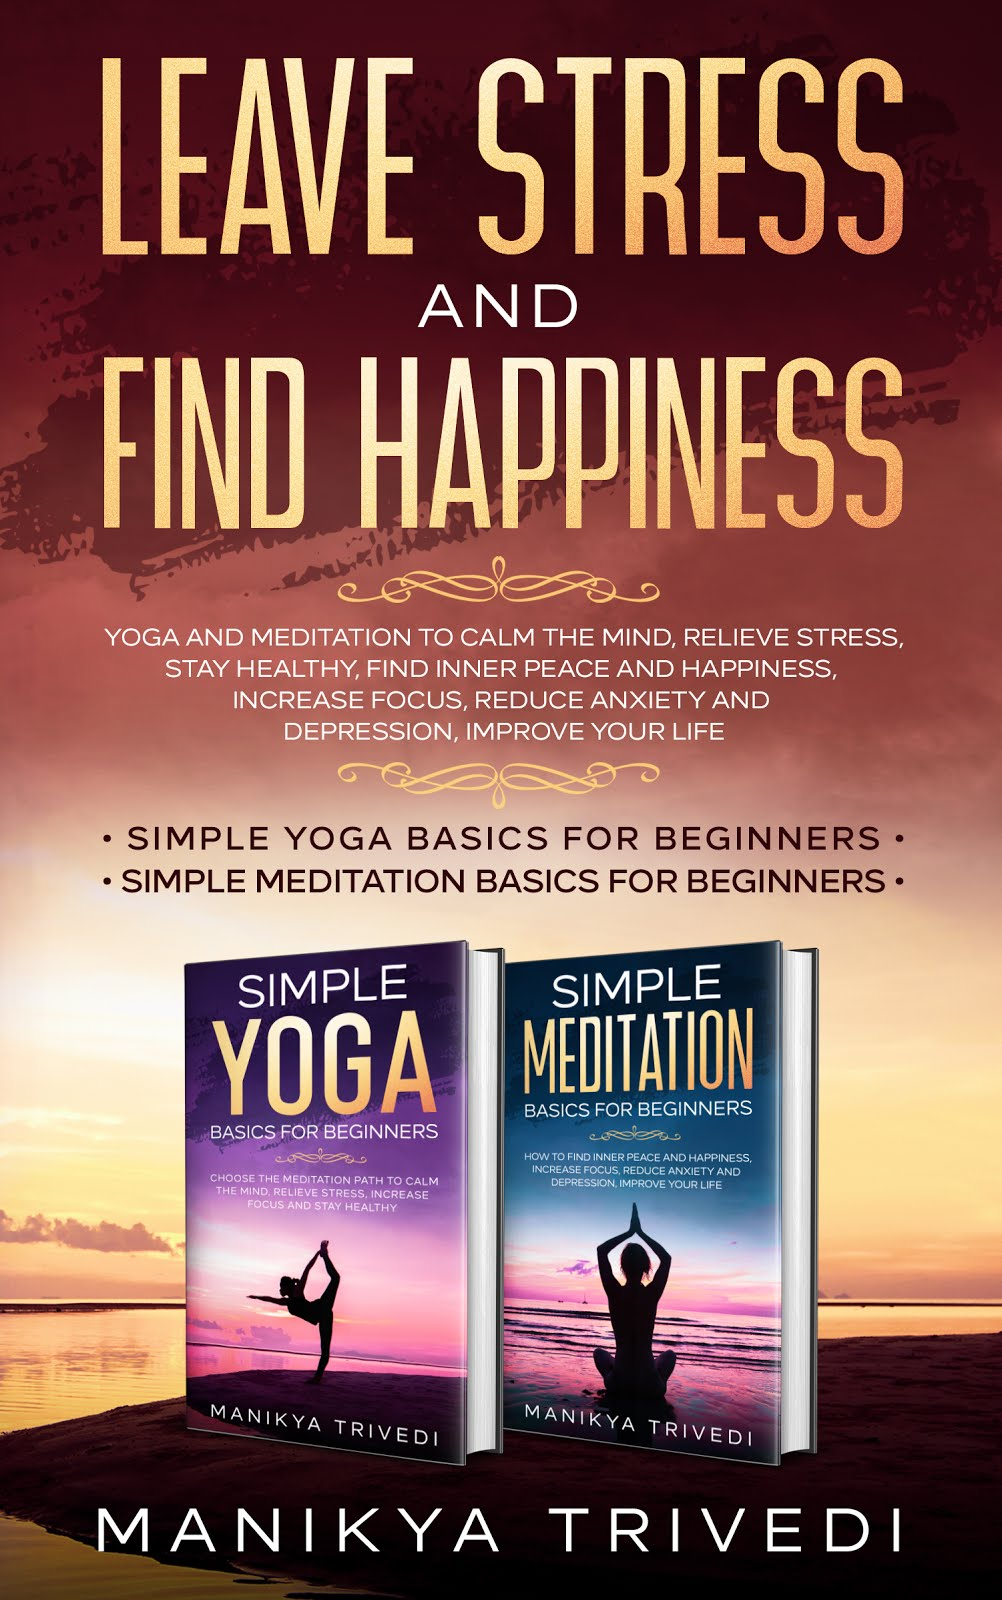 Leave Stress And Find Happiness: Yoga And Meditation To Calm The Mind, Relieve Stress ,Stay Healthy